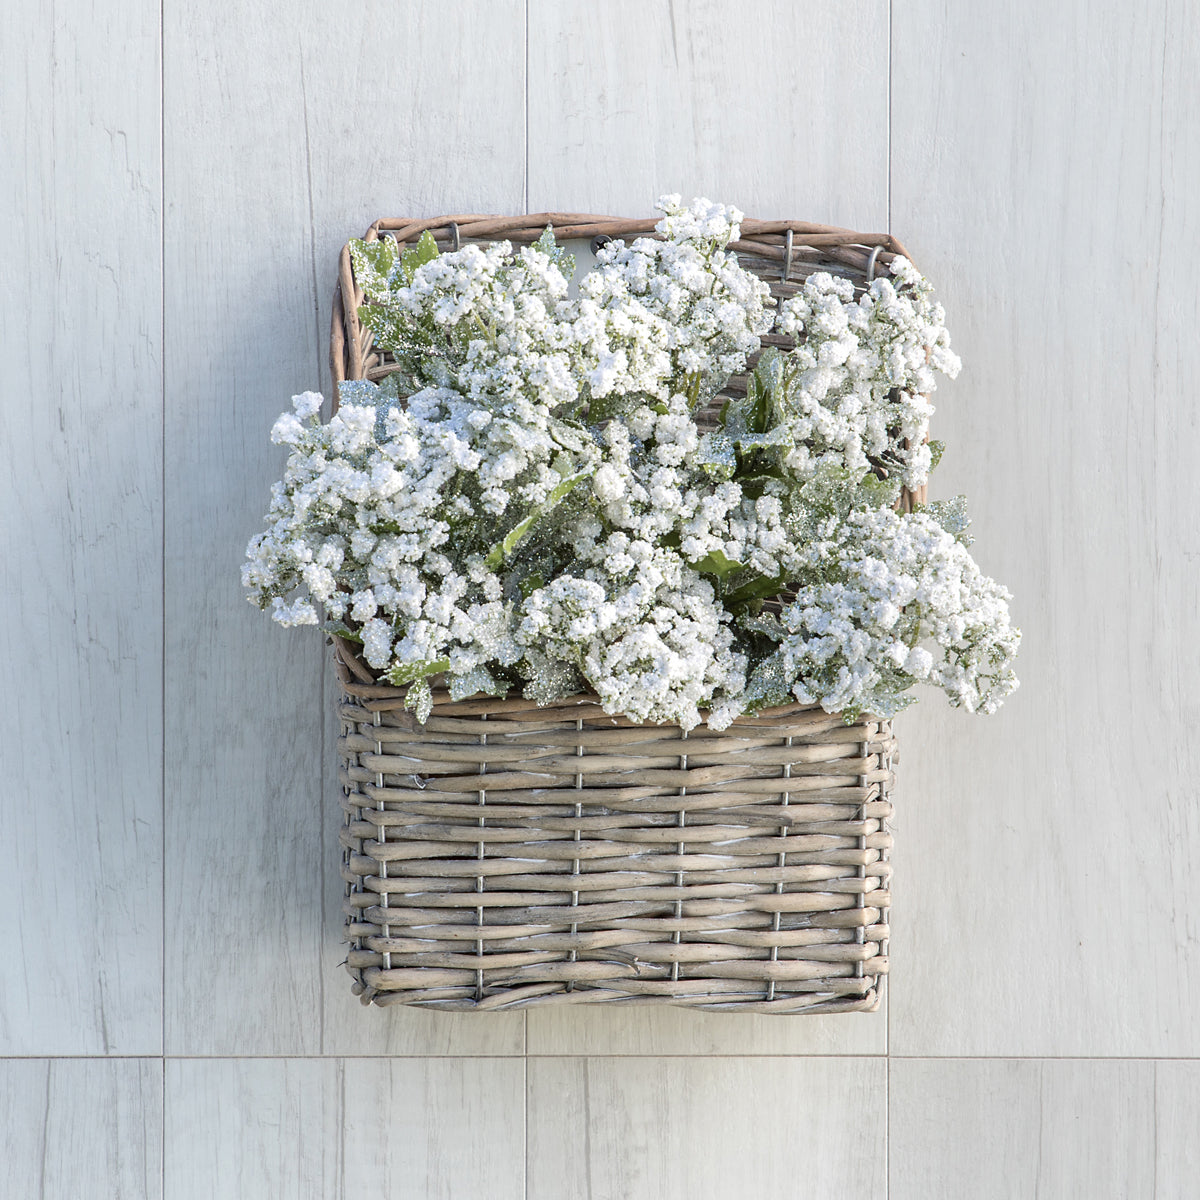 Grey Washed Wall Baskets - Vintage Crossroads